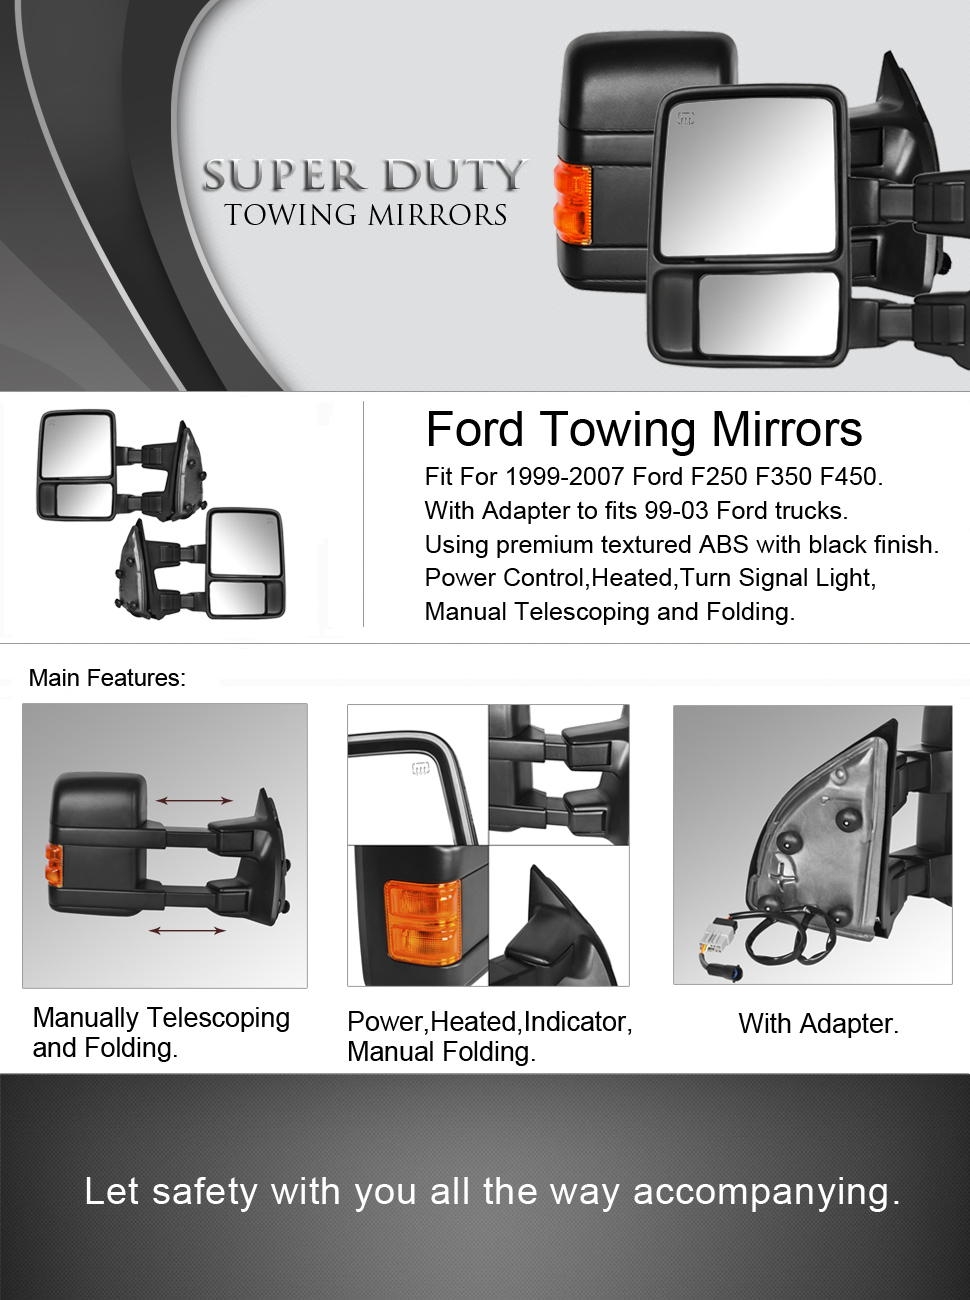 3e4EMyExQyWq._UX970_TTW_ amazon com dedc ford towing mirrors f250 ford tow mirrors f350 Dodge Truck Leather at webbmarketing.co